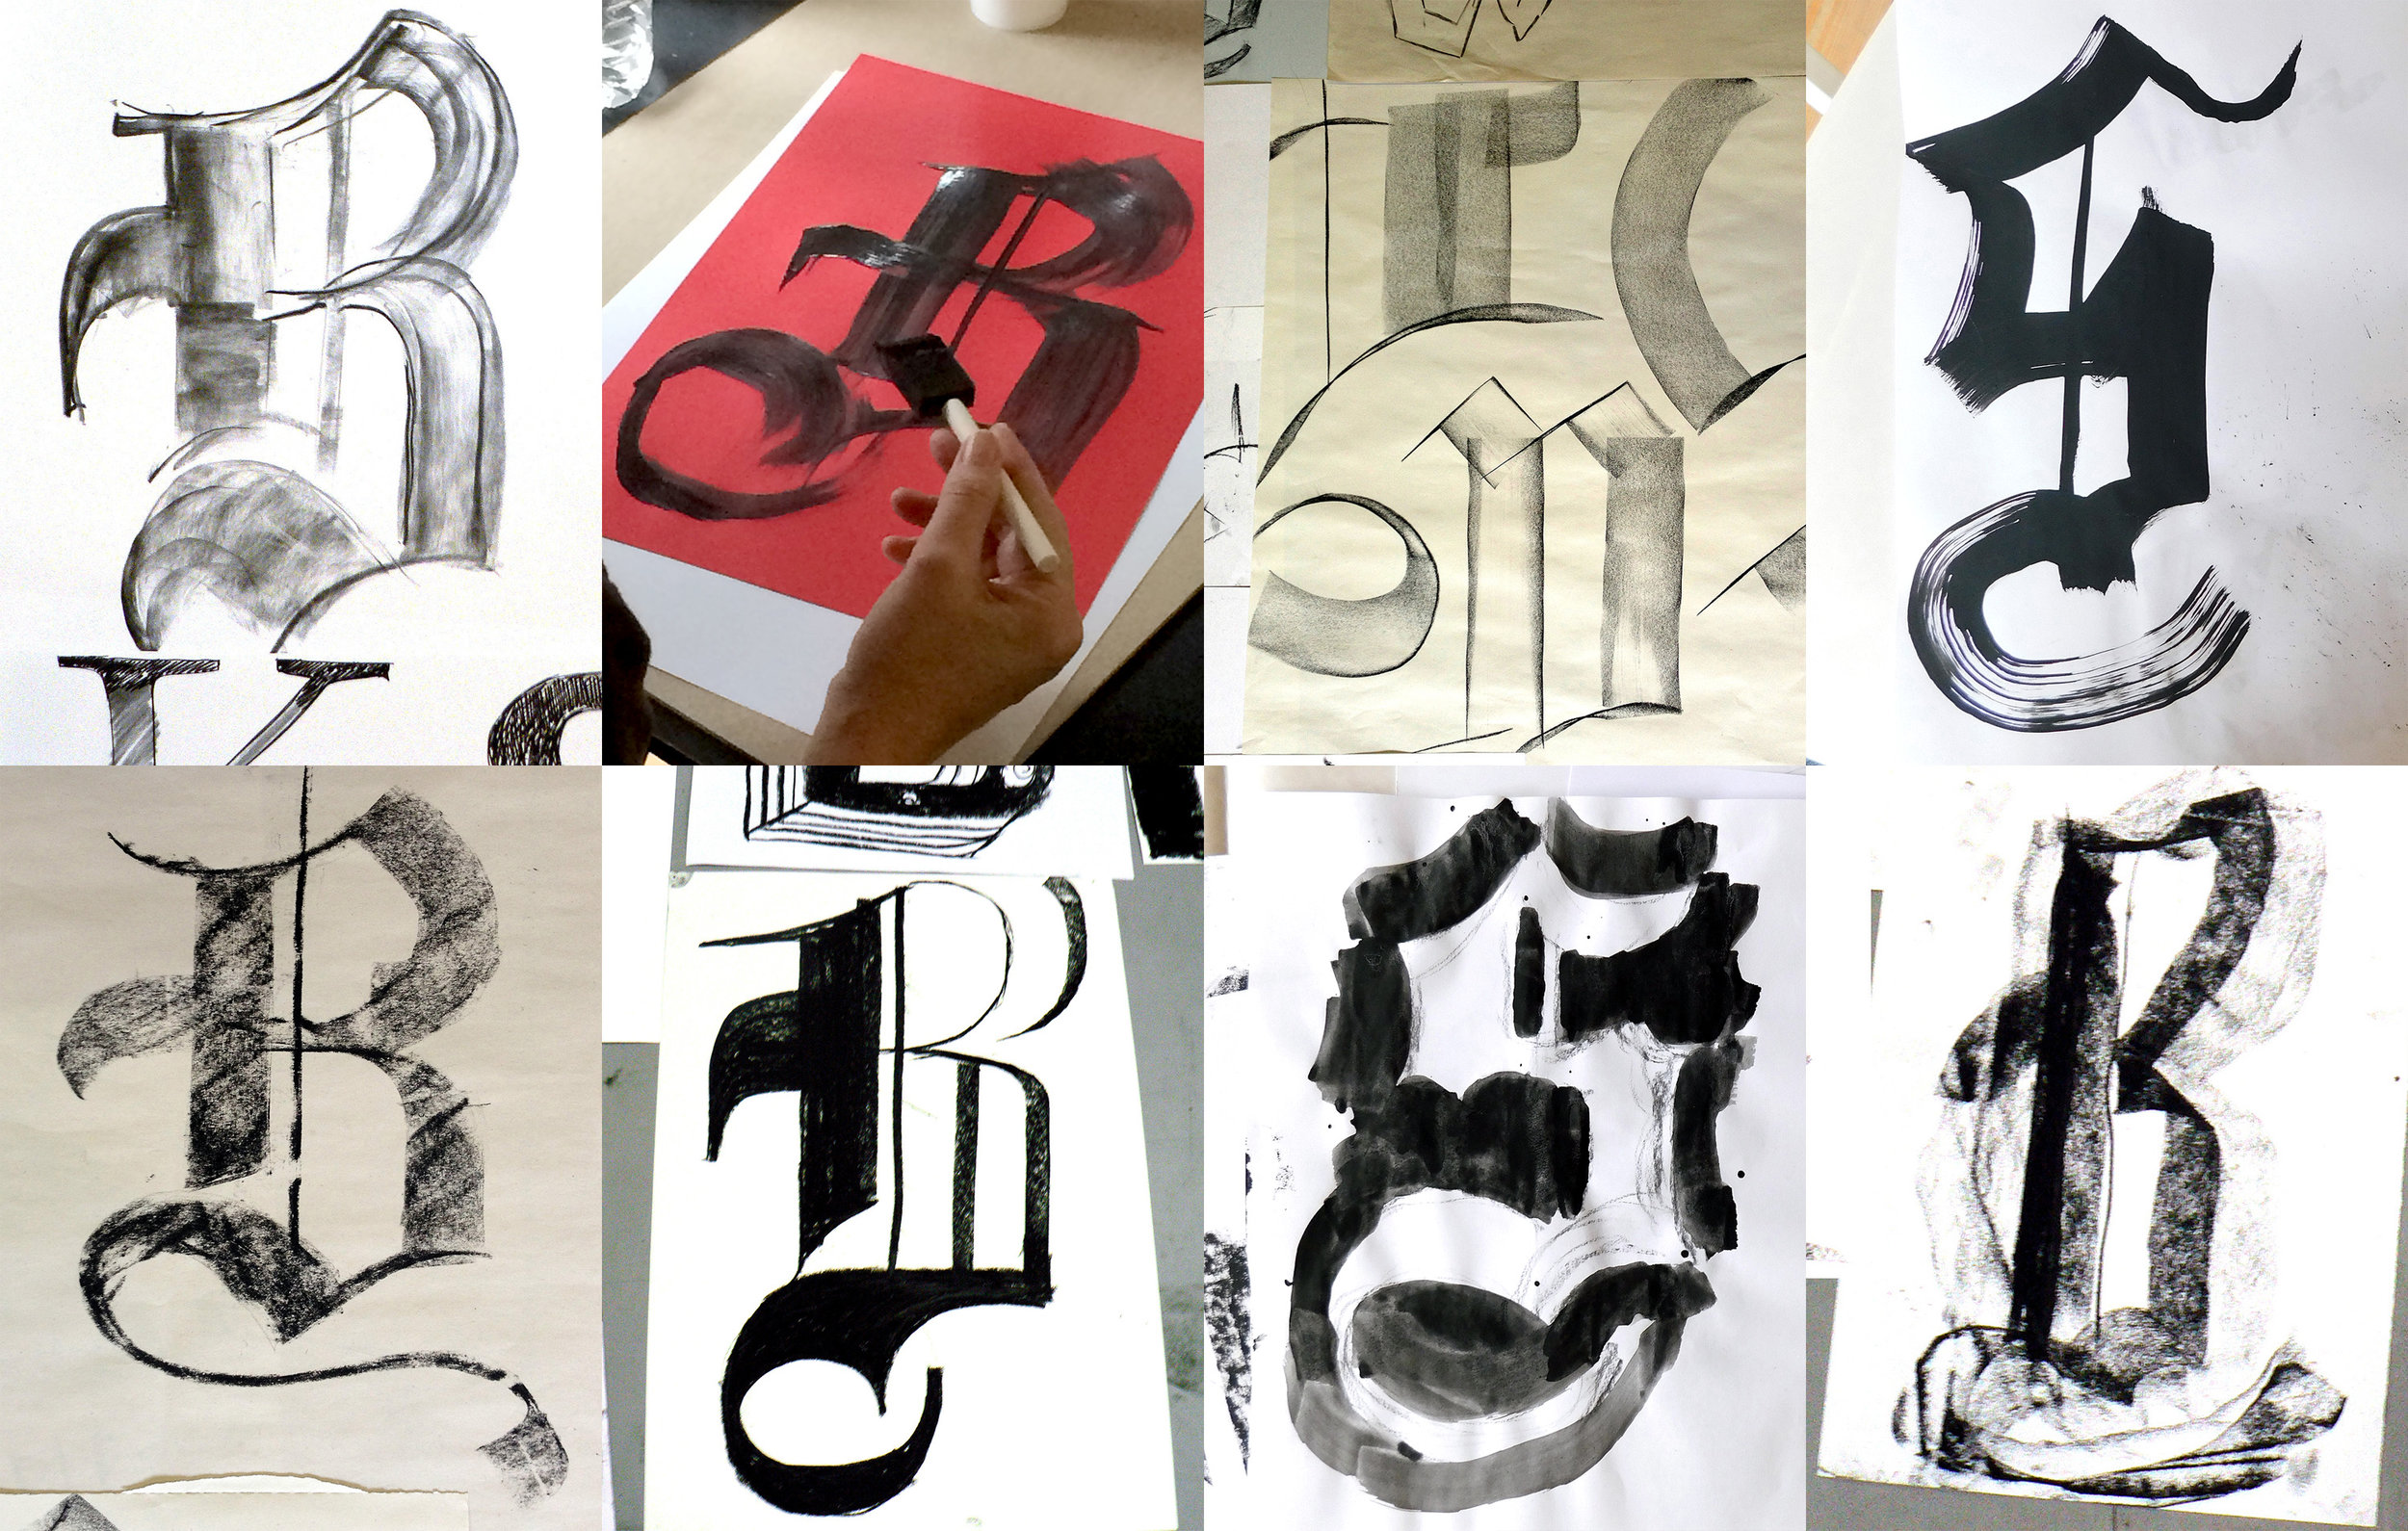 Blackletter sketches